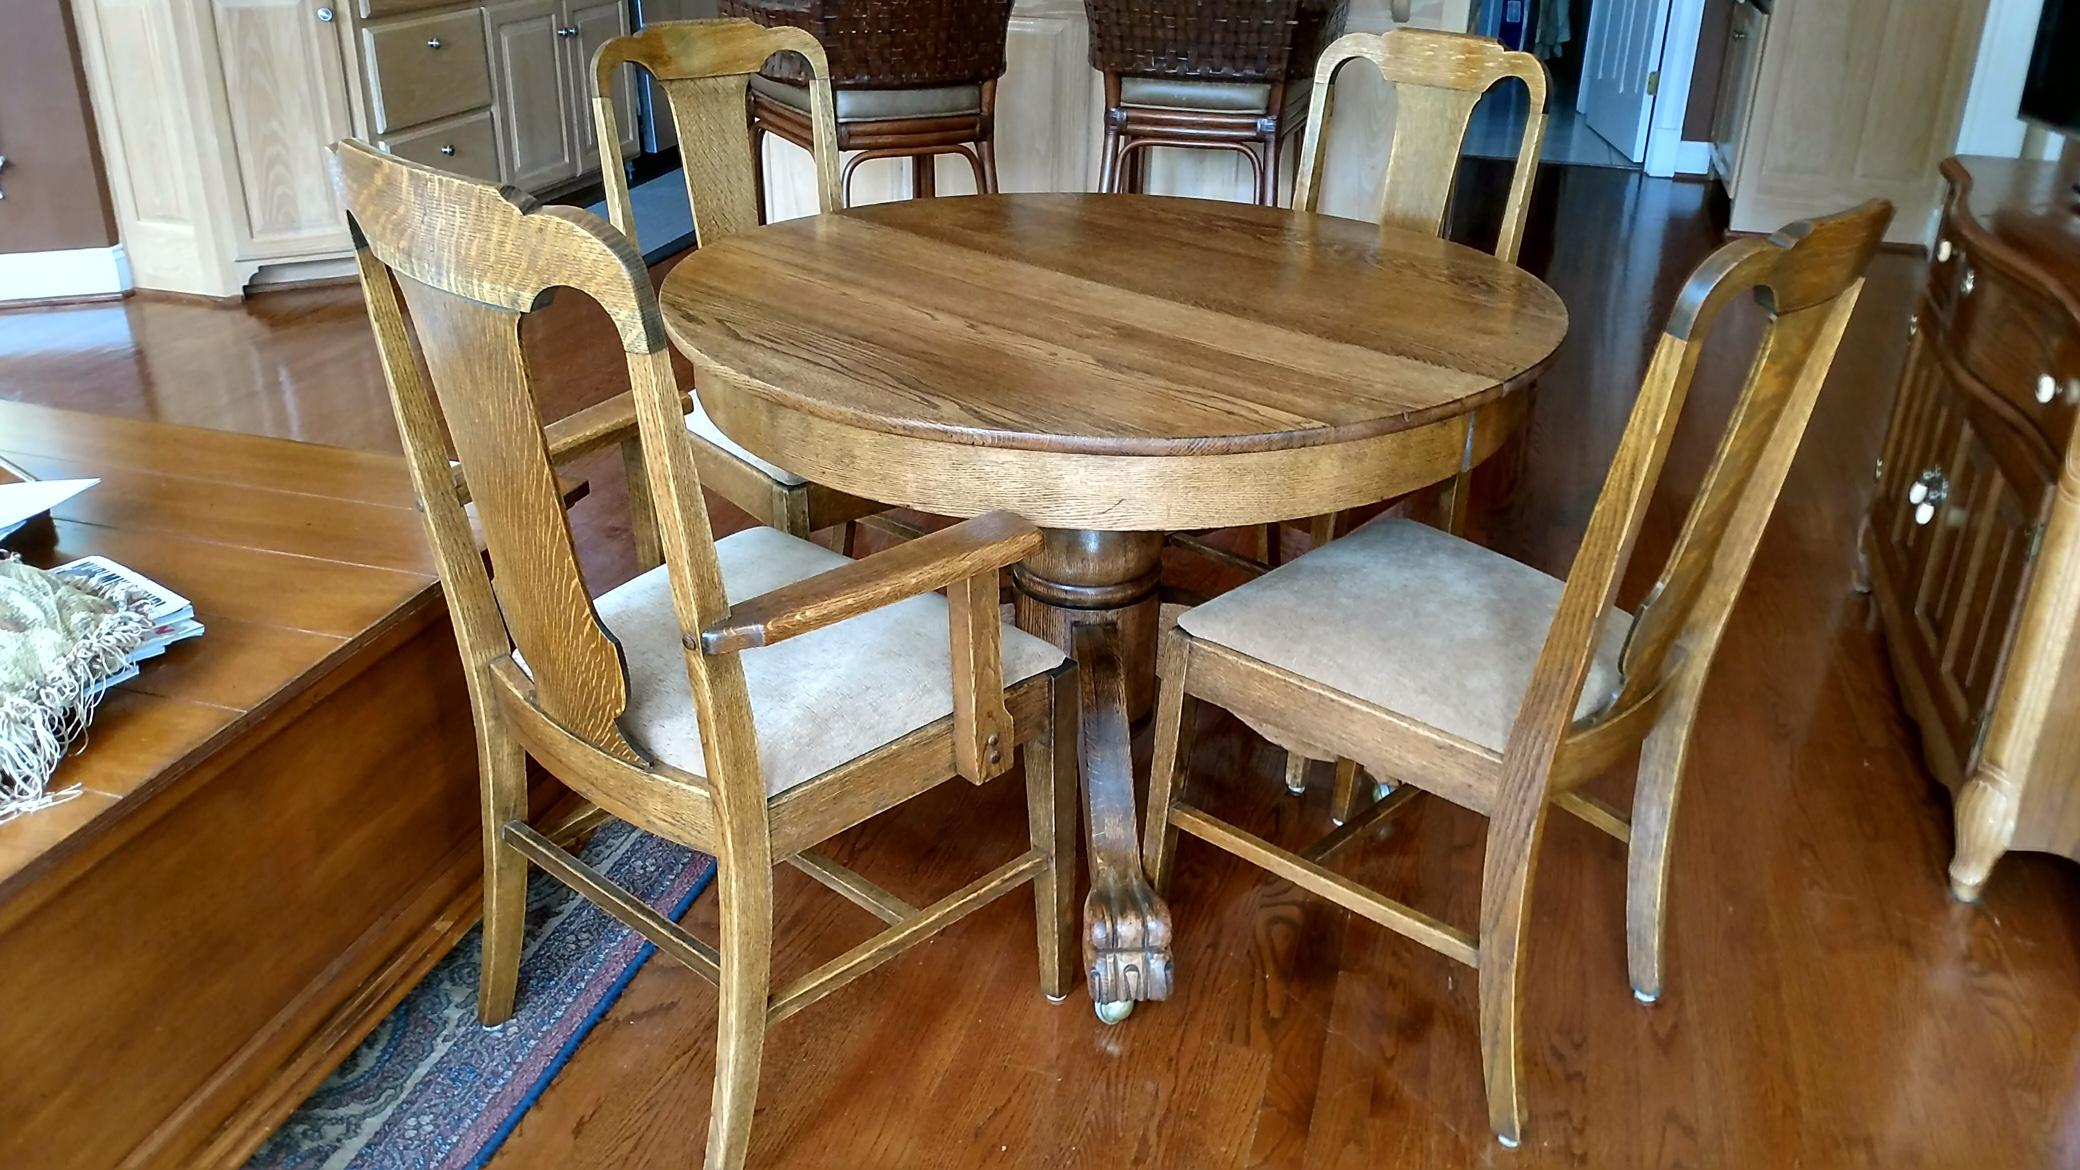 Foot Dining Room Table antique claw foot dining table & 4 chairs | chairish